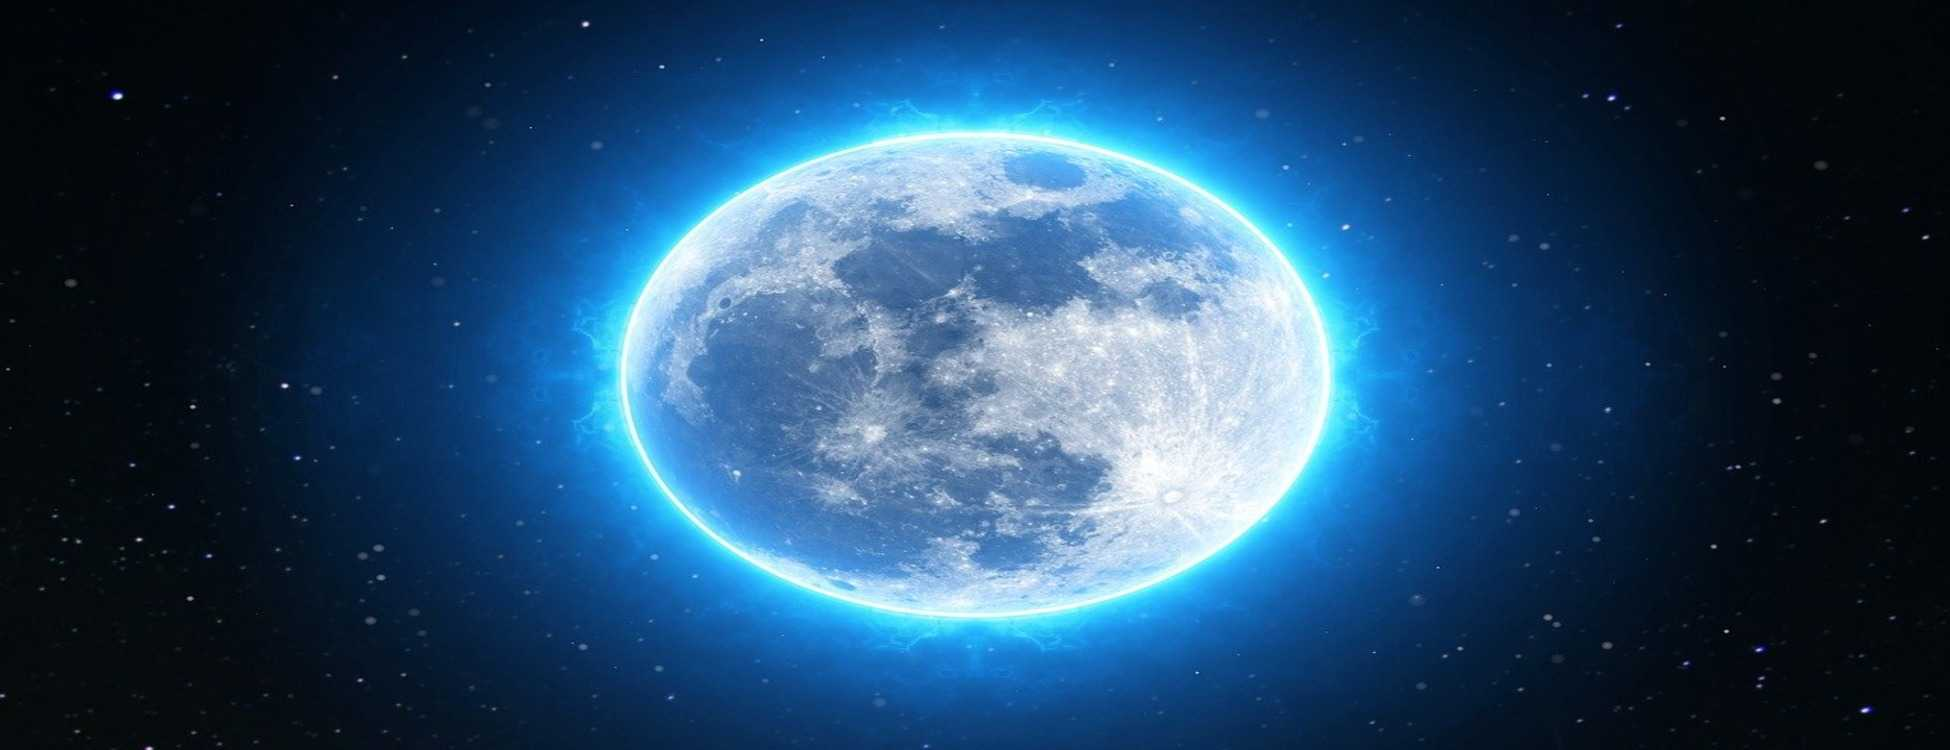 https://primeastrology.com/wp-content/uploads/2020/12/moon_final1.jpg